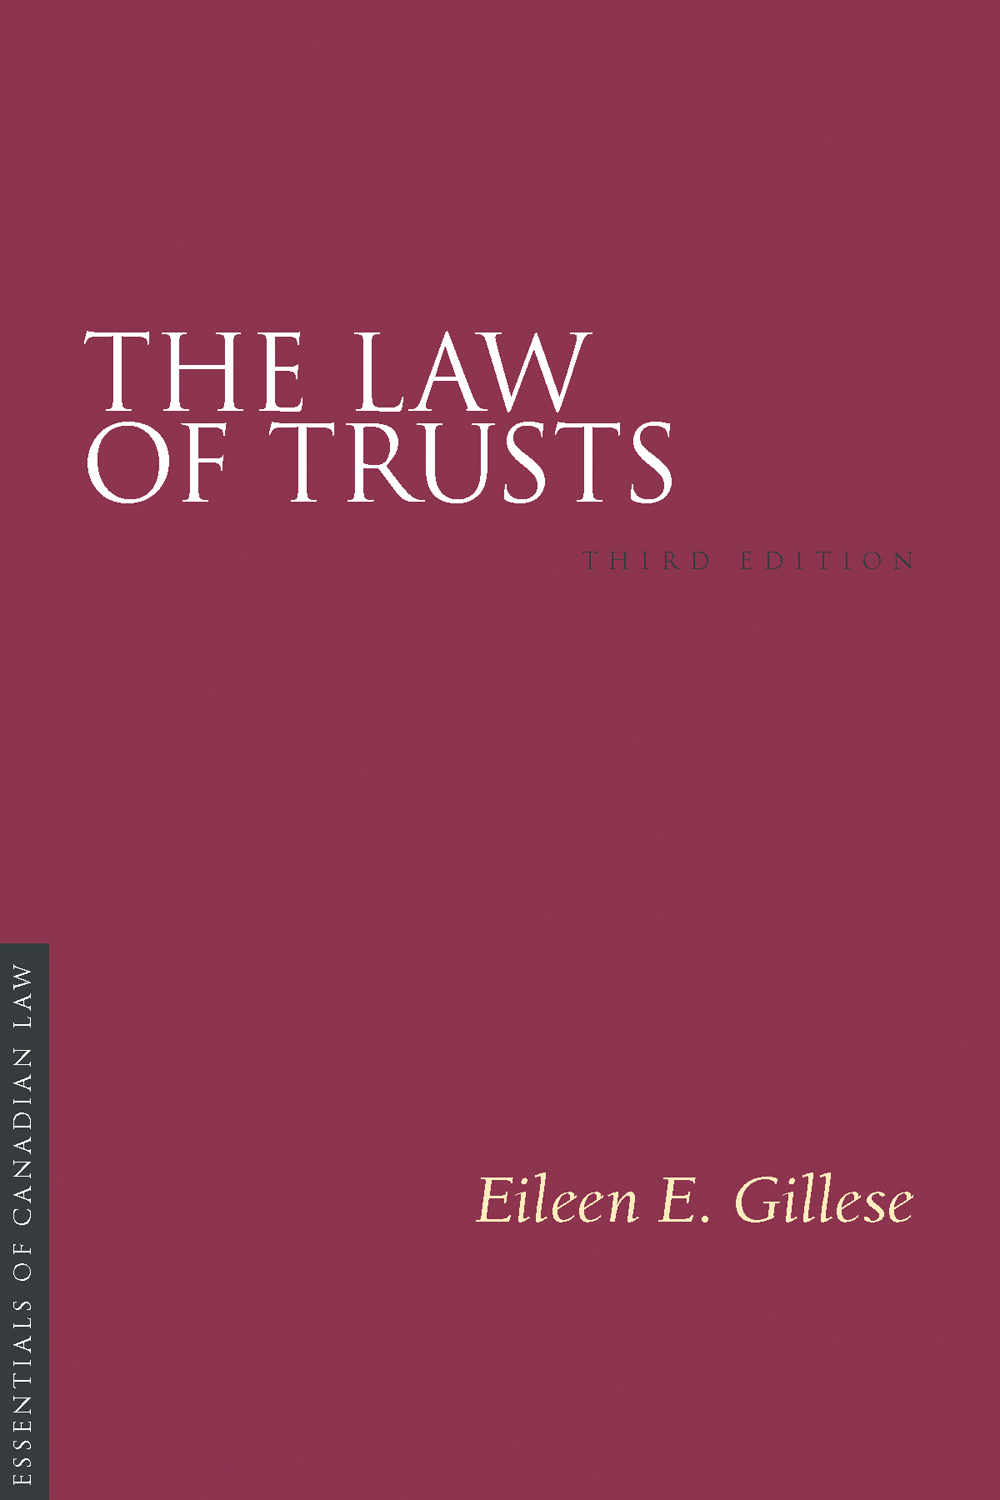 Book cover for Law of Trusts by Eileen Gillese. As a book in the Essentials of Canadian Law series, the cover is a solid burgundy colour with a simple type treatment in capital serif letters in white.